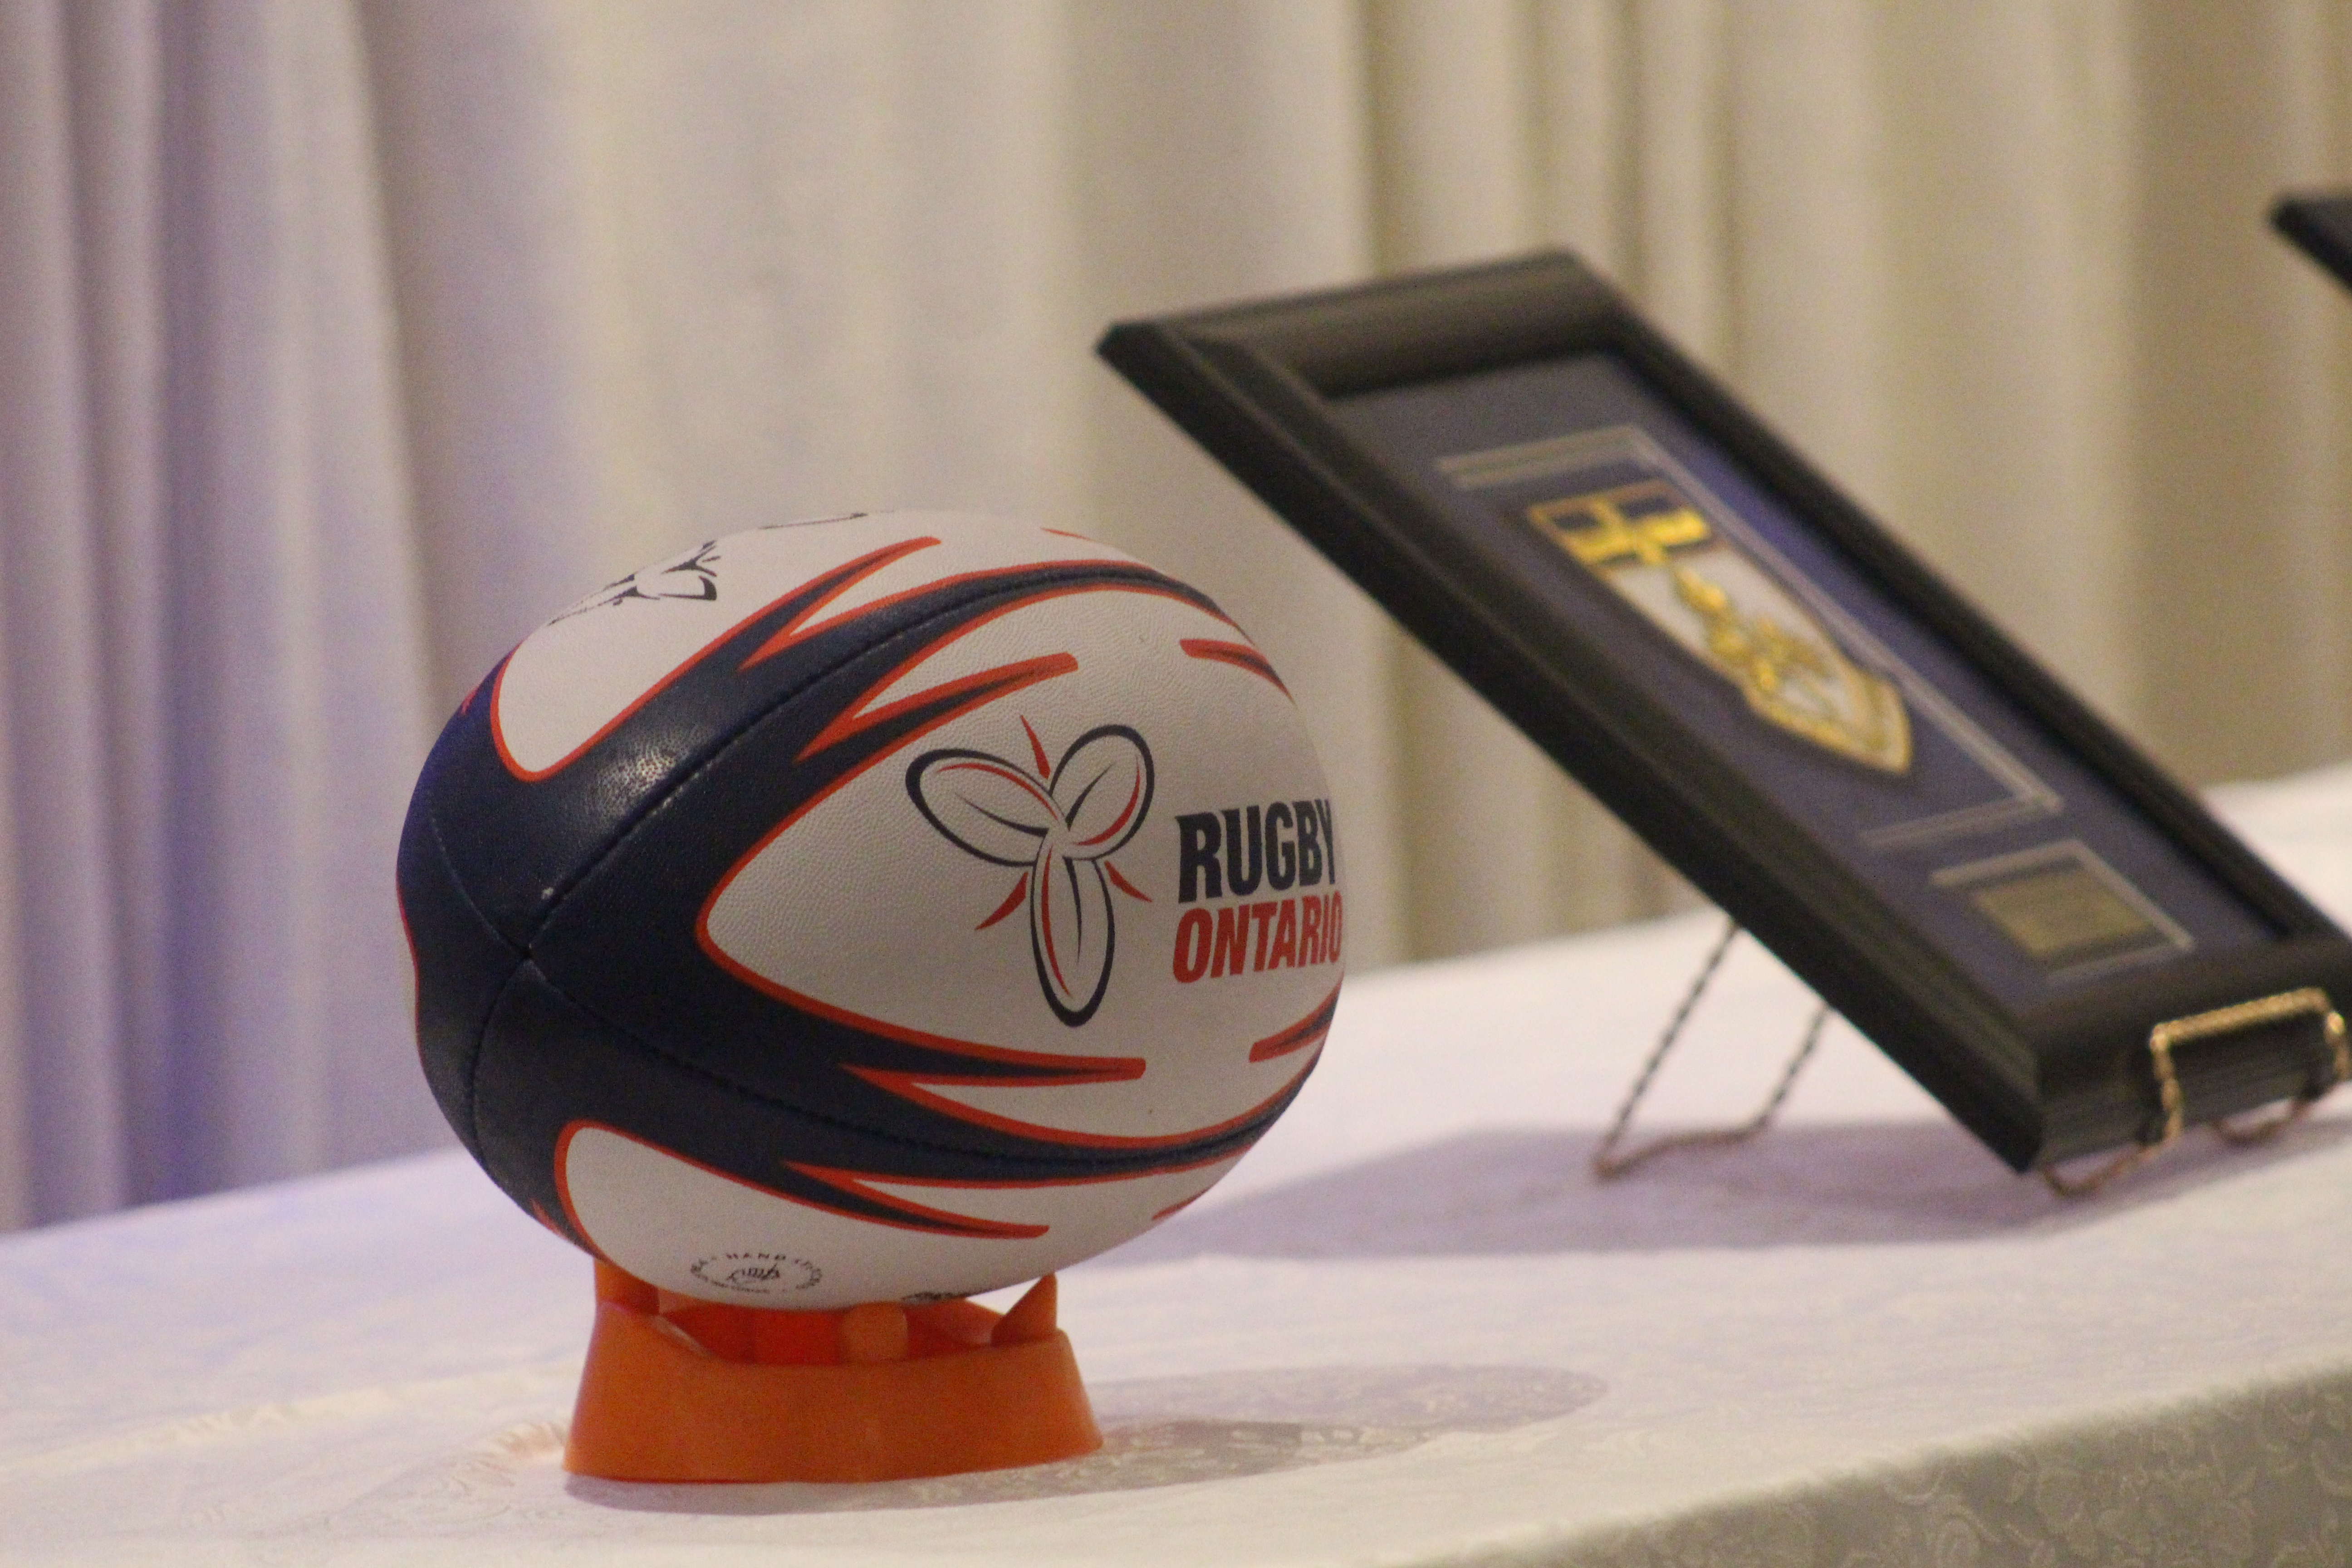 Rugby Ontario